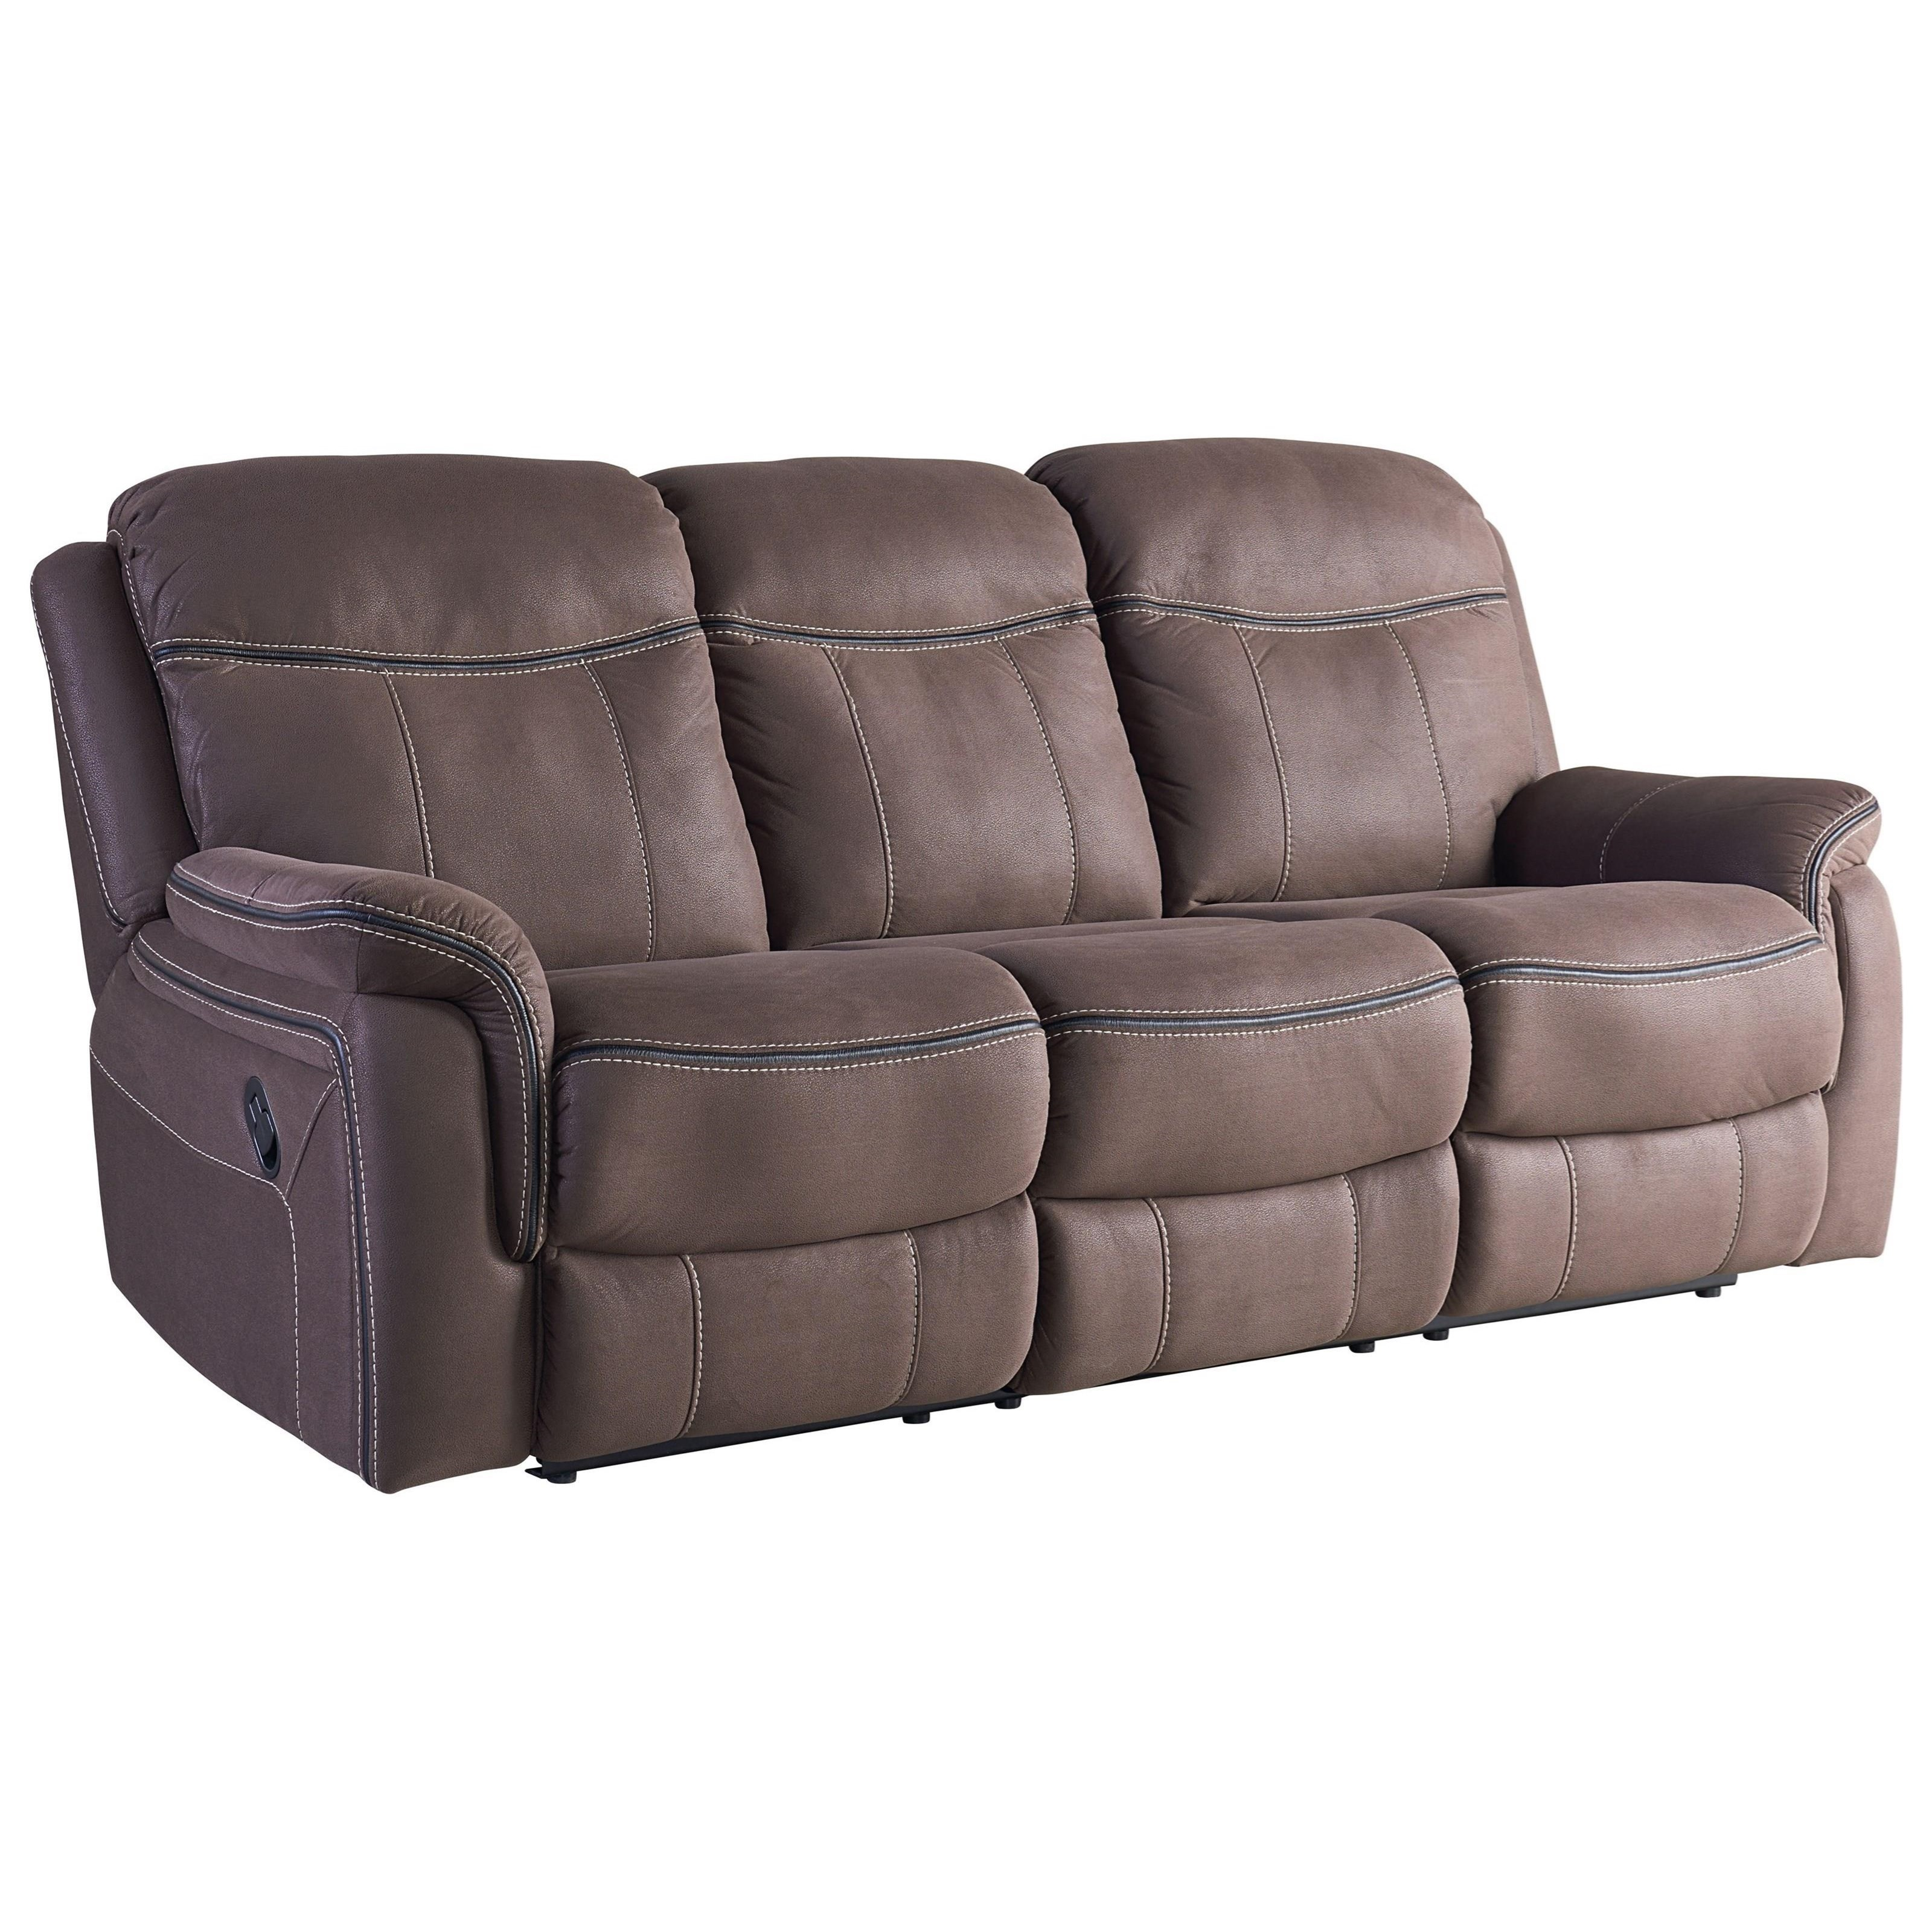 Standard furniture champion taupe faux leather reclining for Sofa exterior reclinable